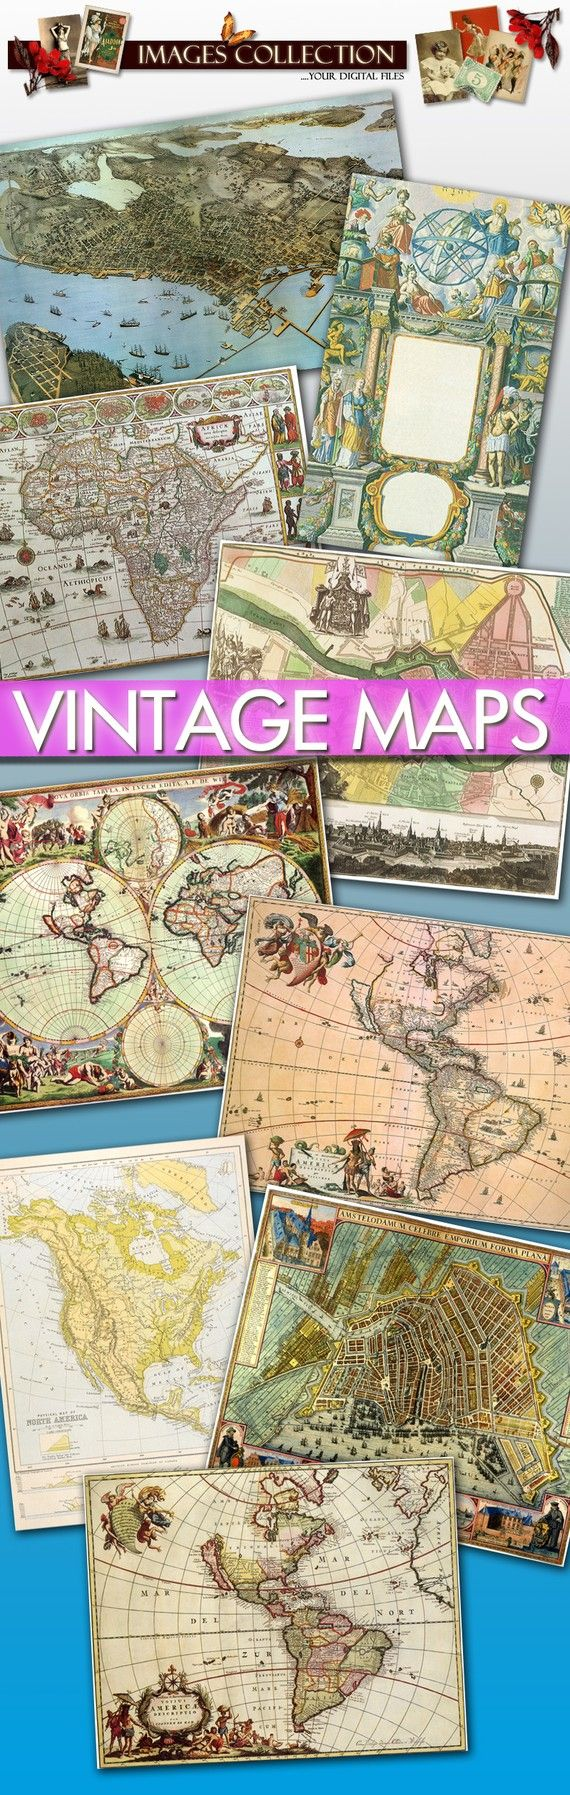 digital collection antique maps jpeg files 300 dpi digital collection 80 antique maps large images printable for your scrap cards labels jewellery decoupage art old ancient world via etsy wall diy gumiabroncs Images